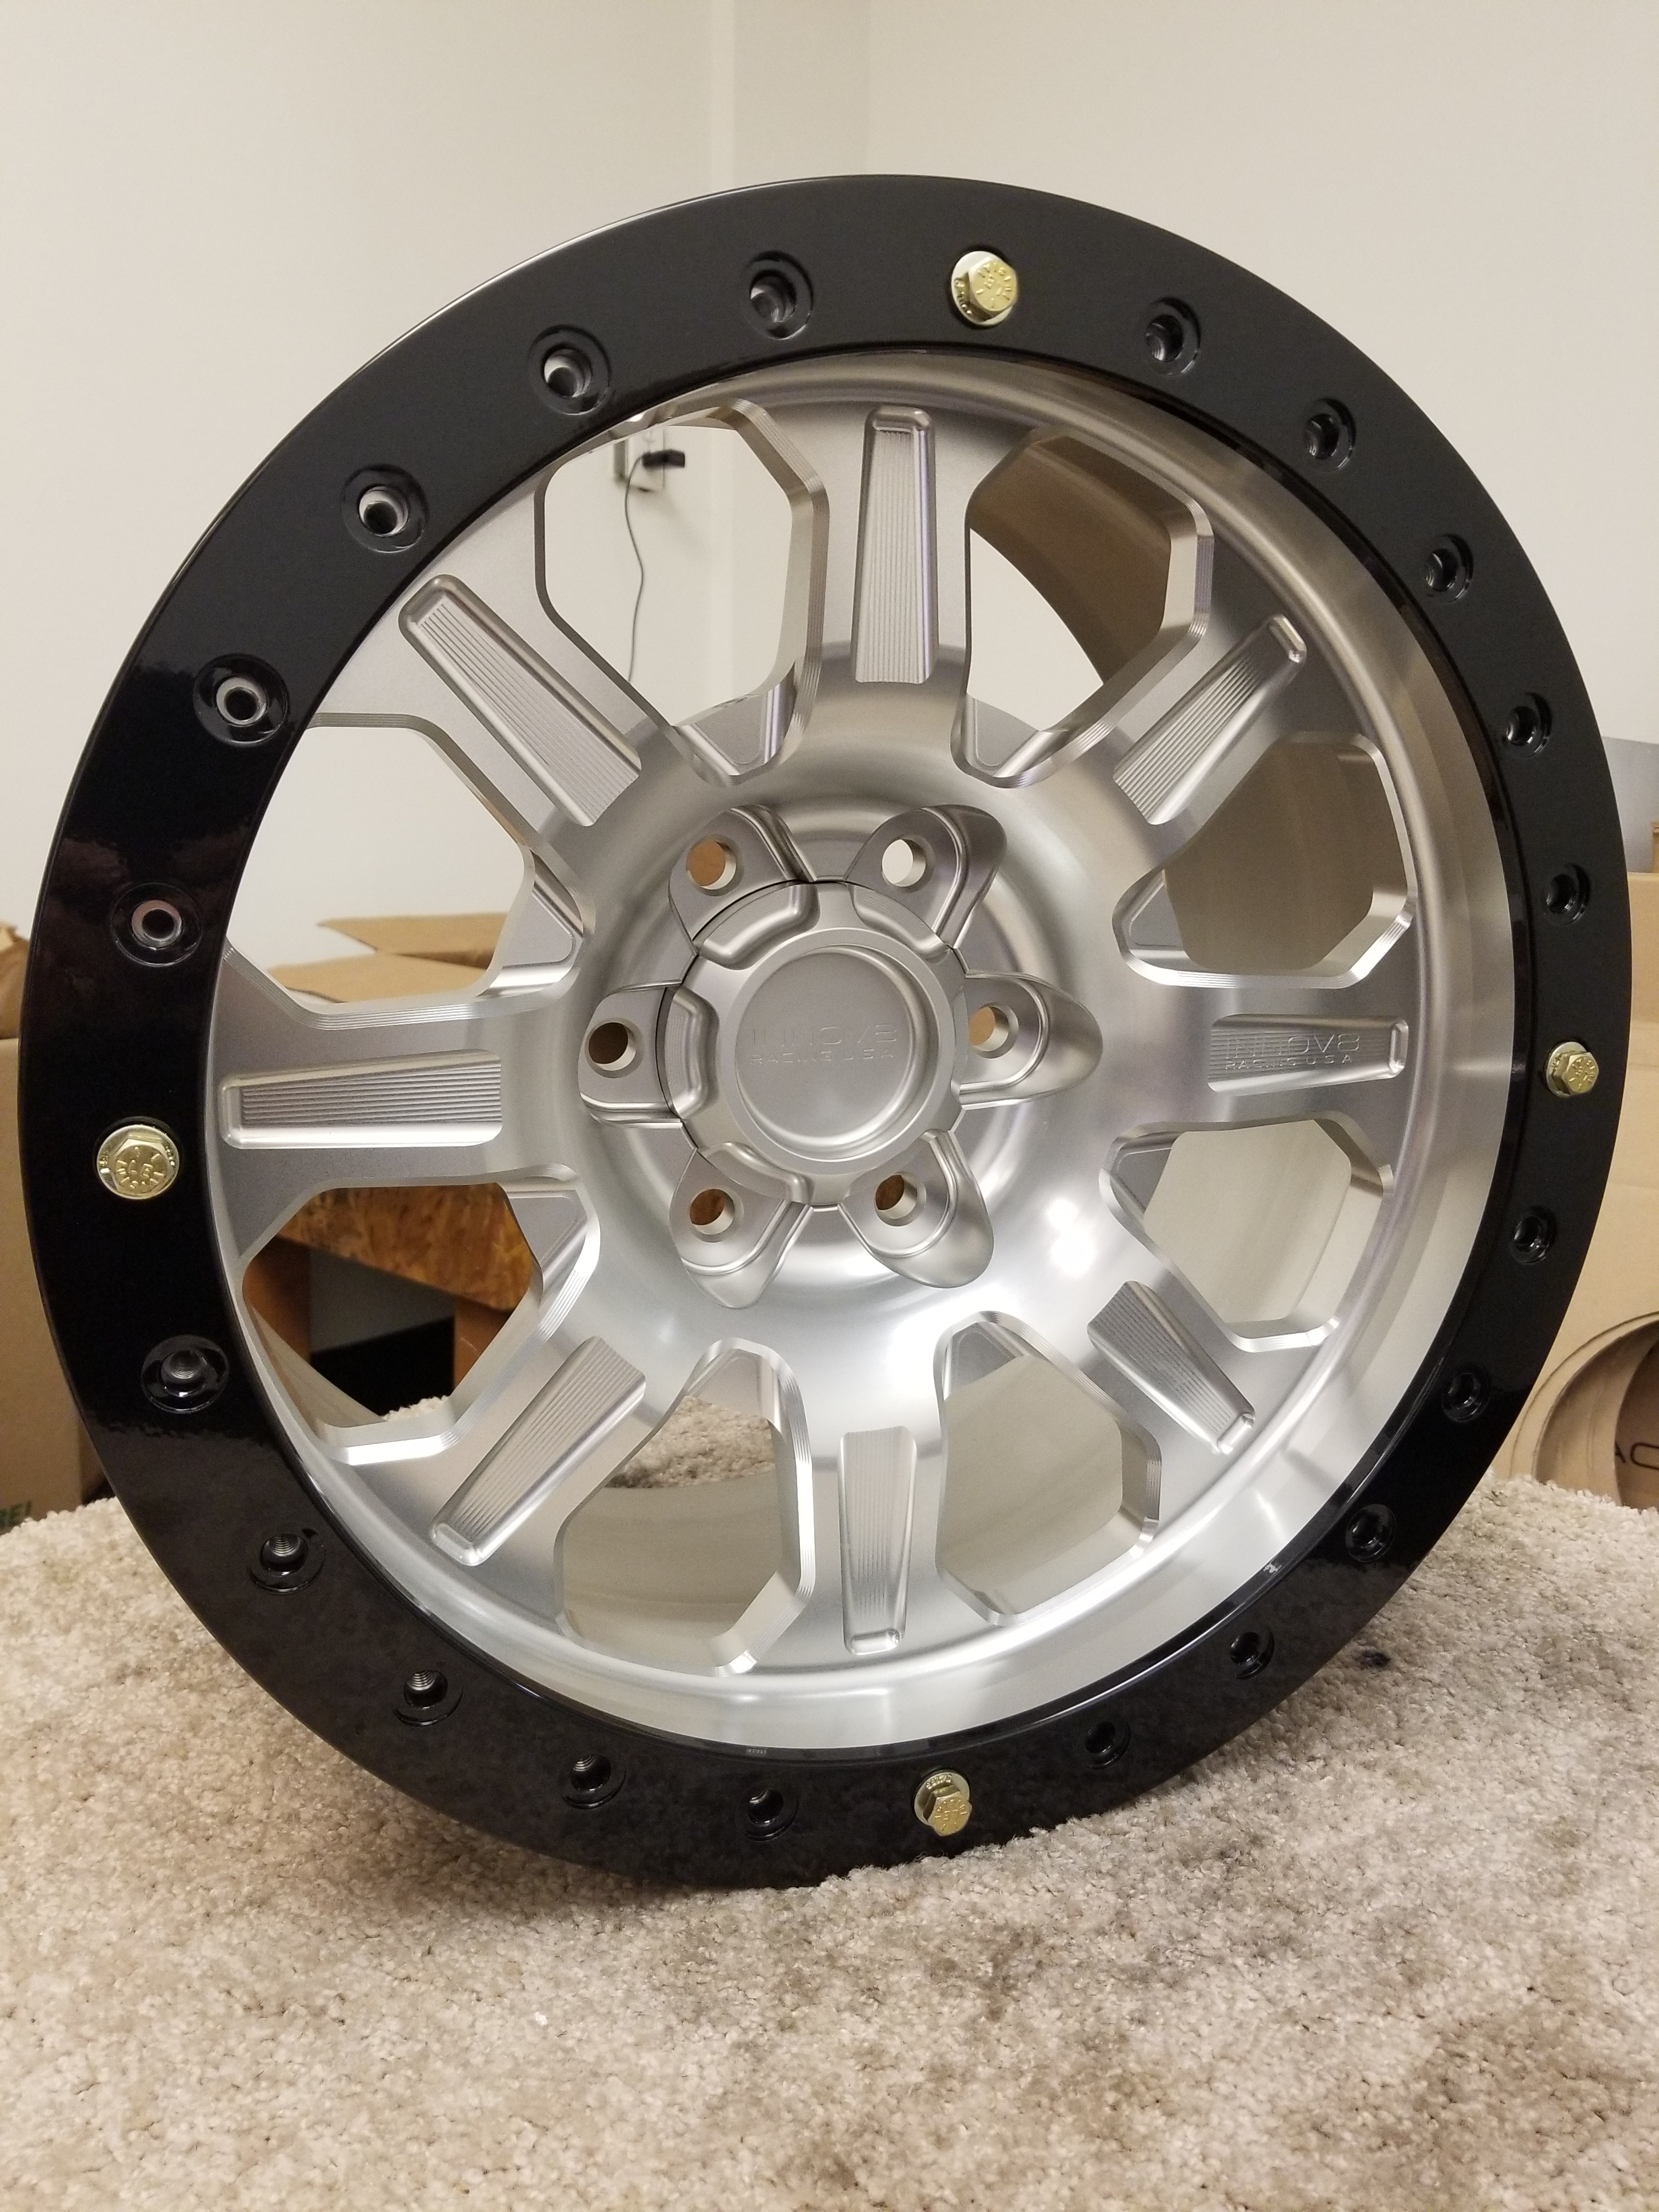 G500 Clear Ano 17in 6lug Beadlock STD